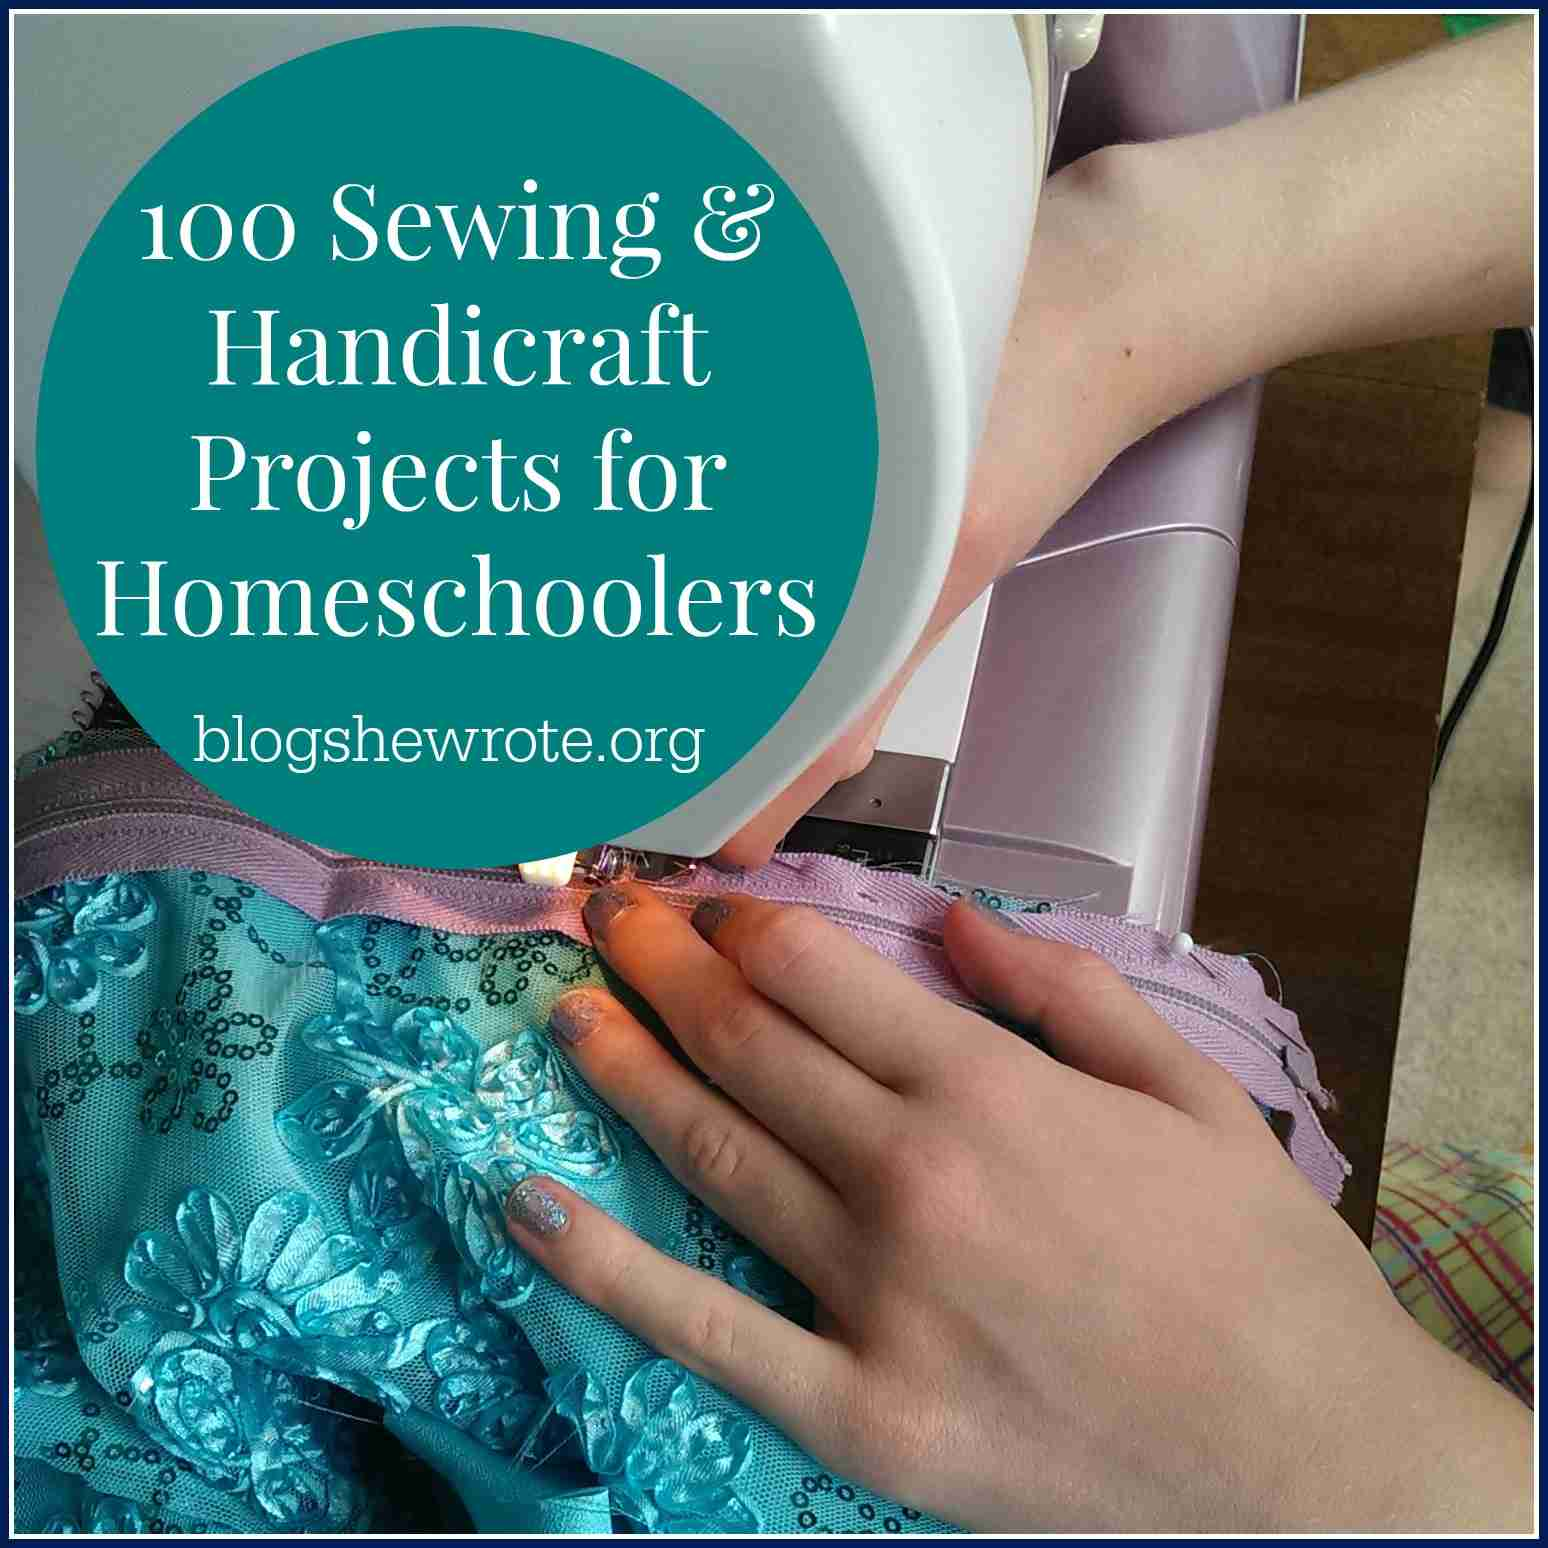 Blog, She Wrote: 100 Sewing & Handicraft Projects for Homeschoolers